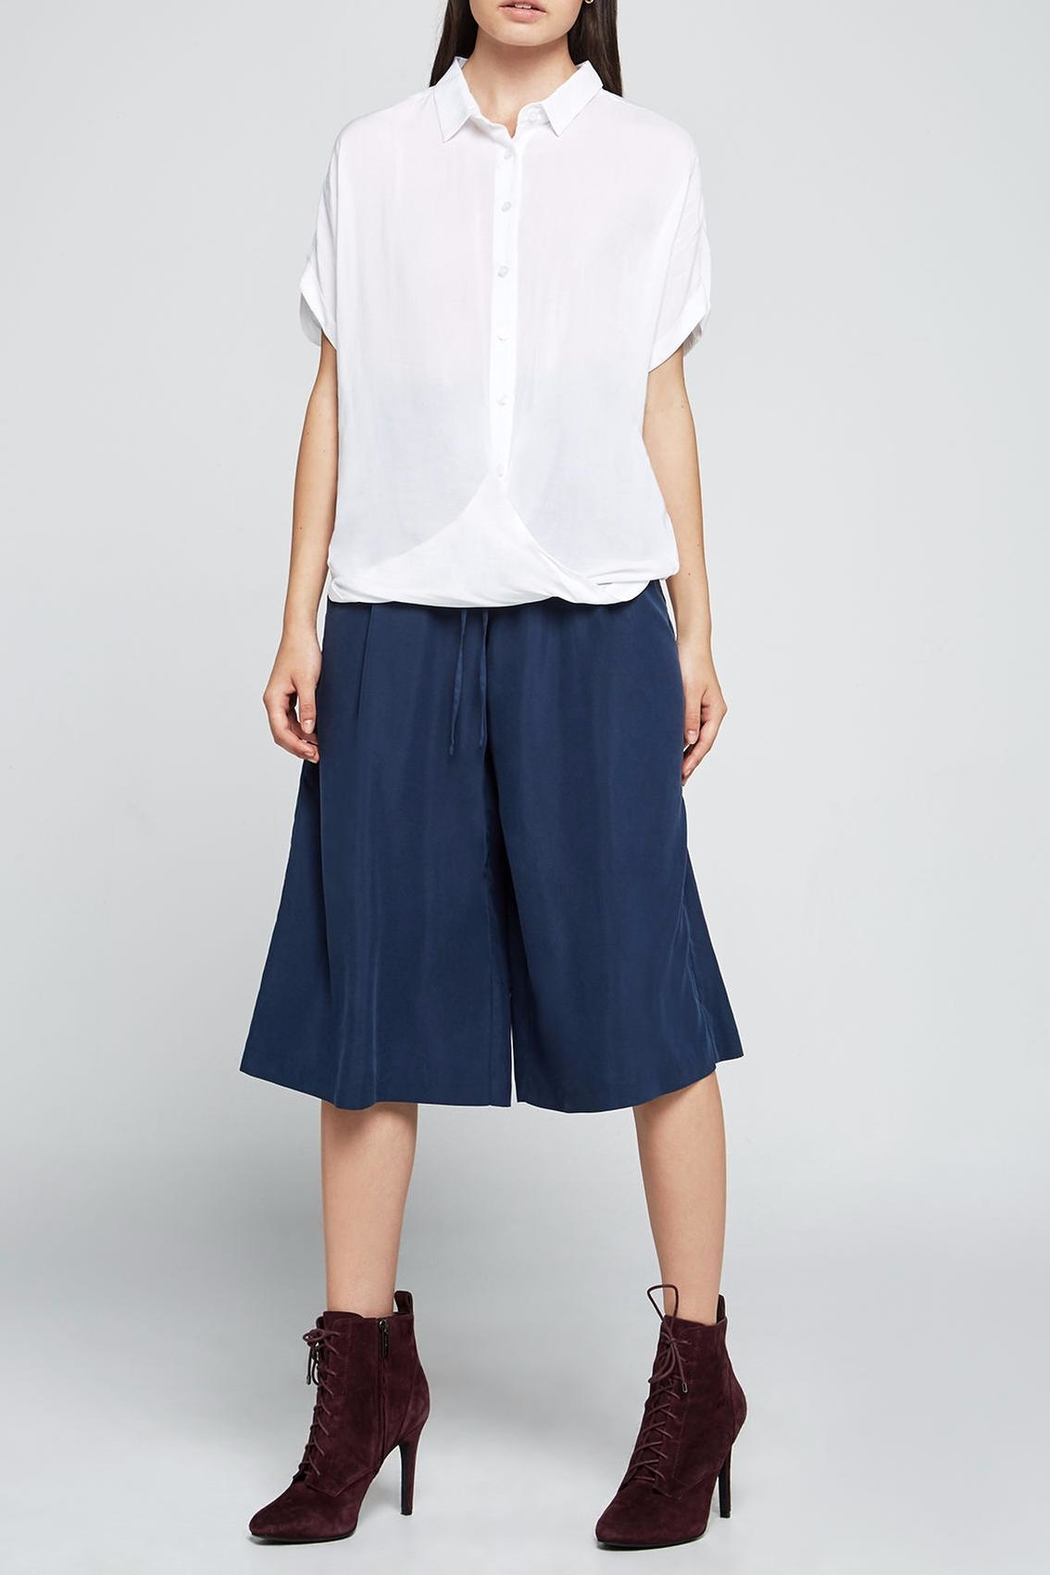 BCBGeneration Button Up Shirt - Side Cropped Image